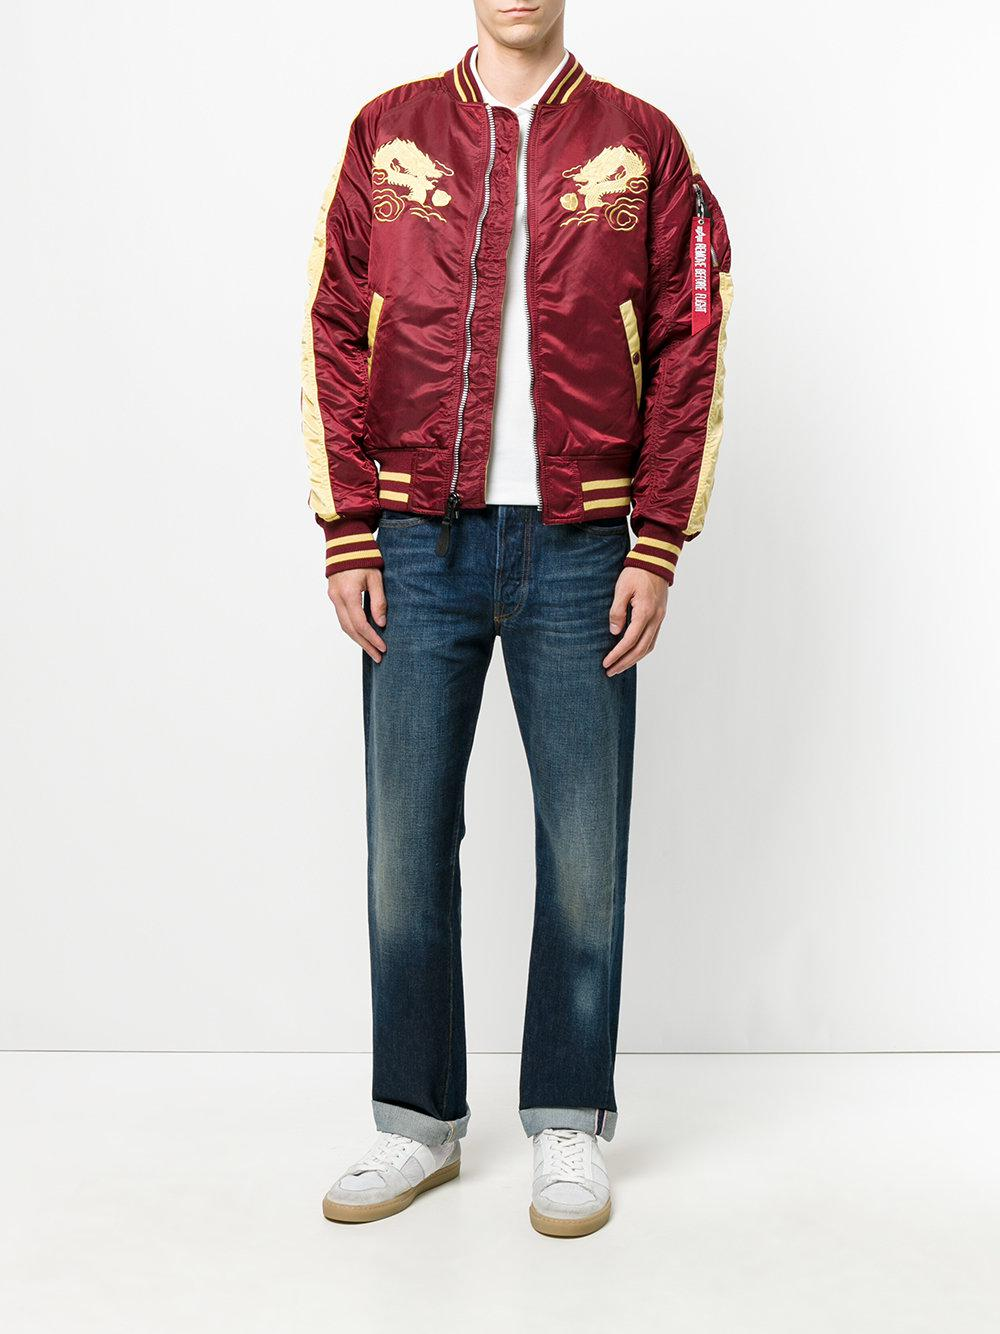 Alpha Industries Synthetic Japan Embroidered Bomber Jacket for Men